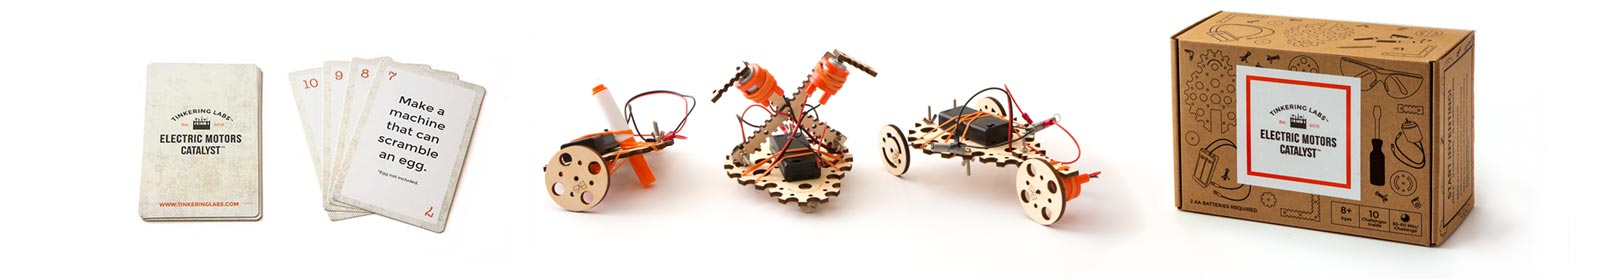 Electric Motors Catalyst Kit parts and cards